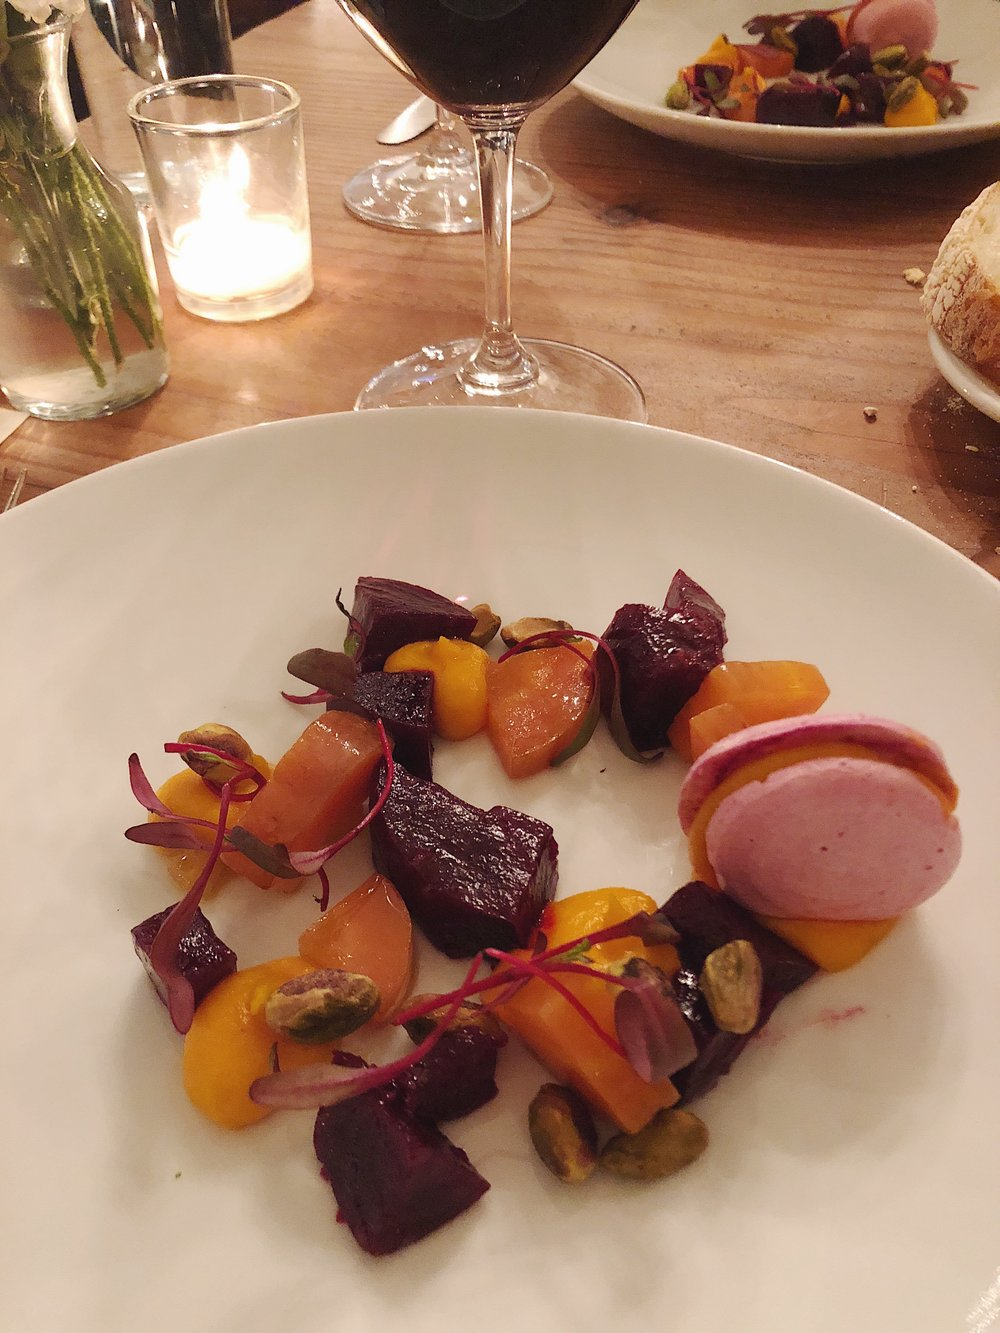 second course - Beet and Carrot Salad with Beet Meringue and Pistachois